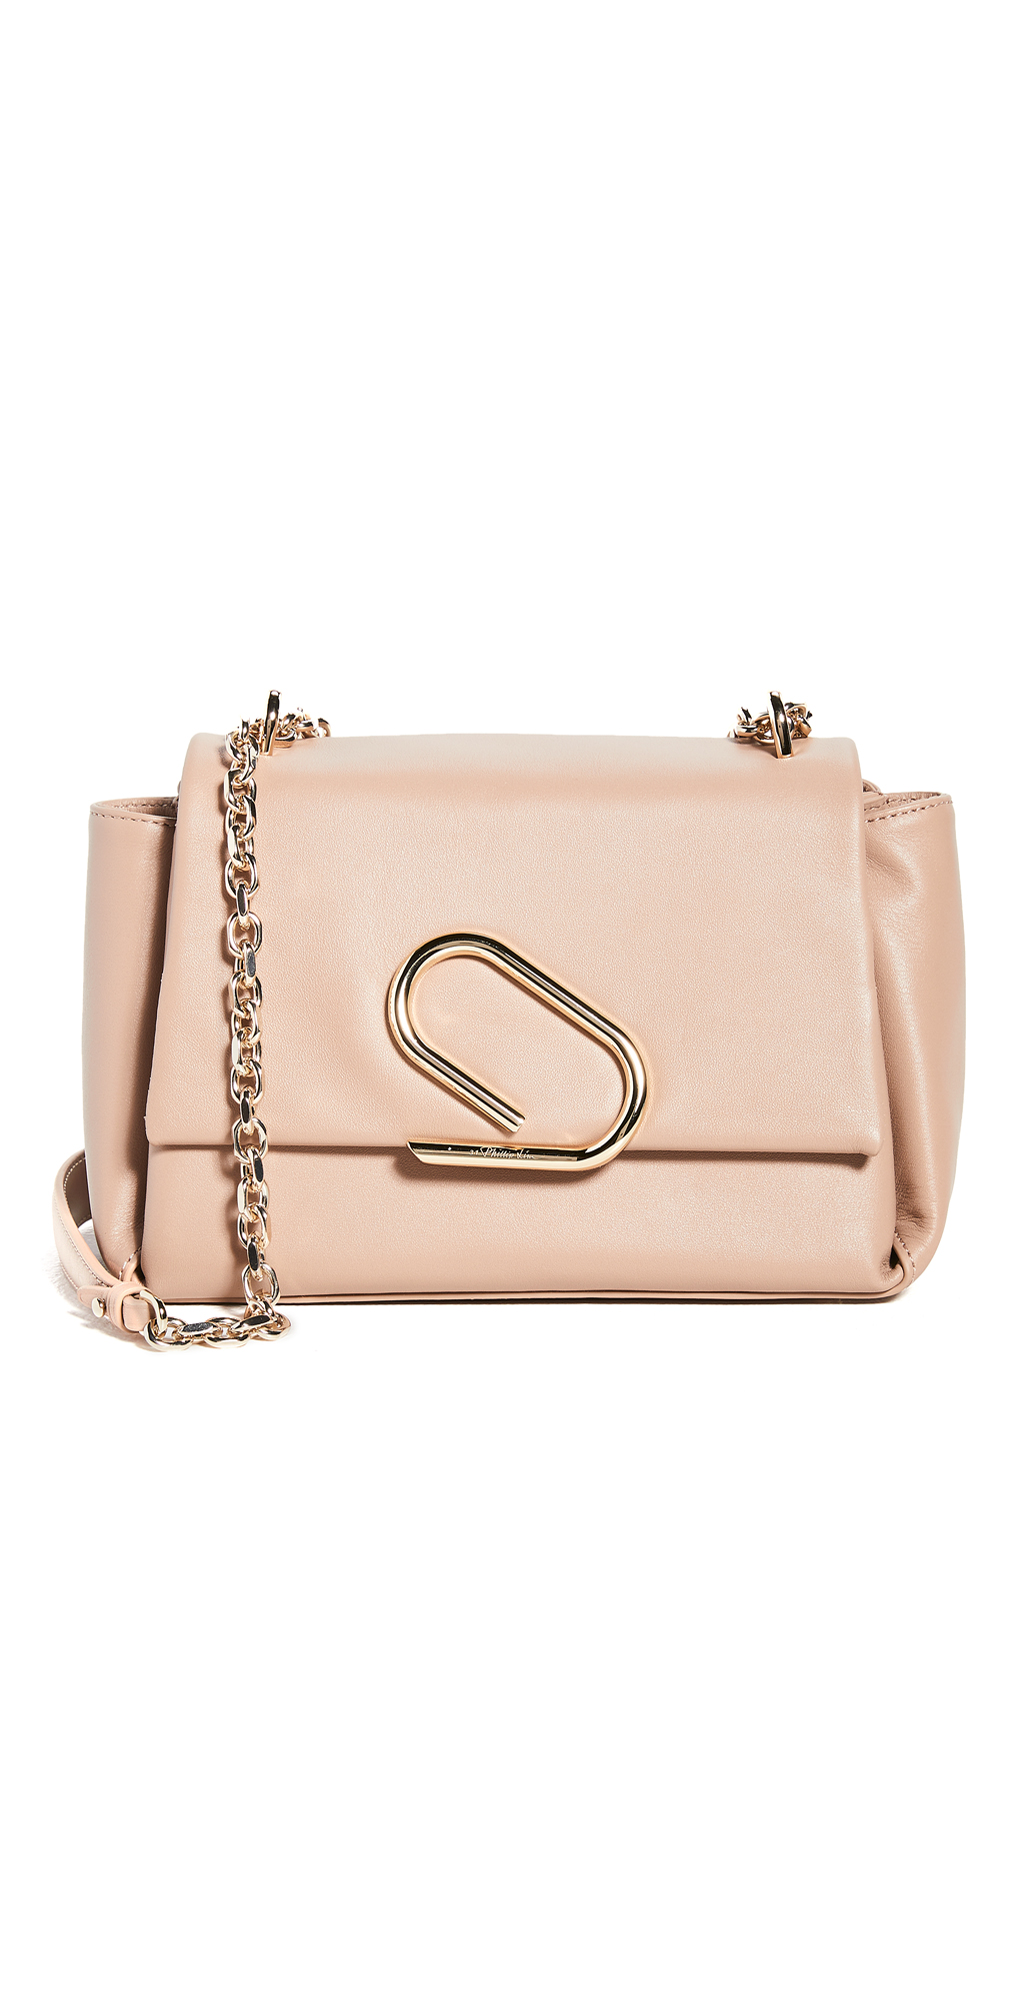 3.1 Phillip Lim Alix Soft Chain Bag